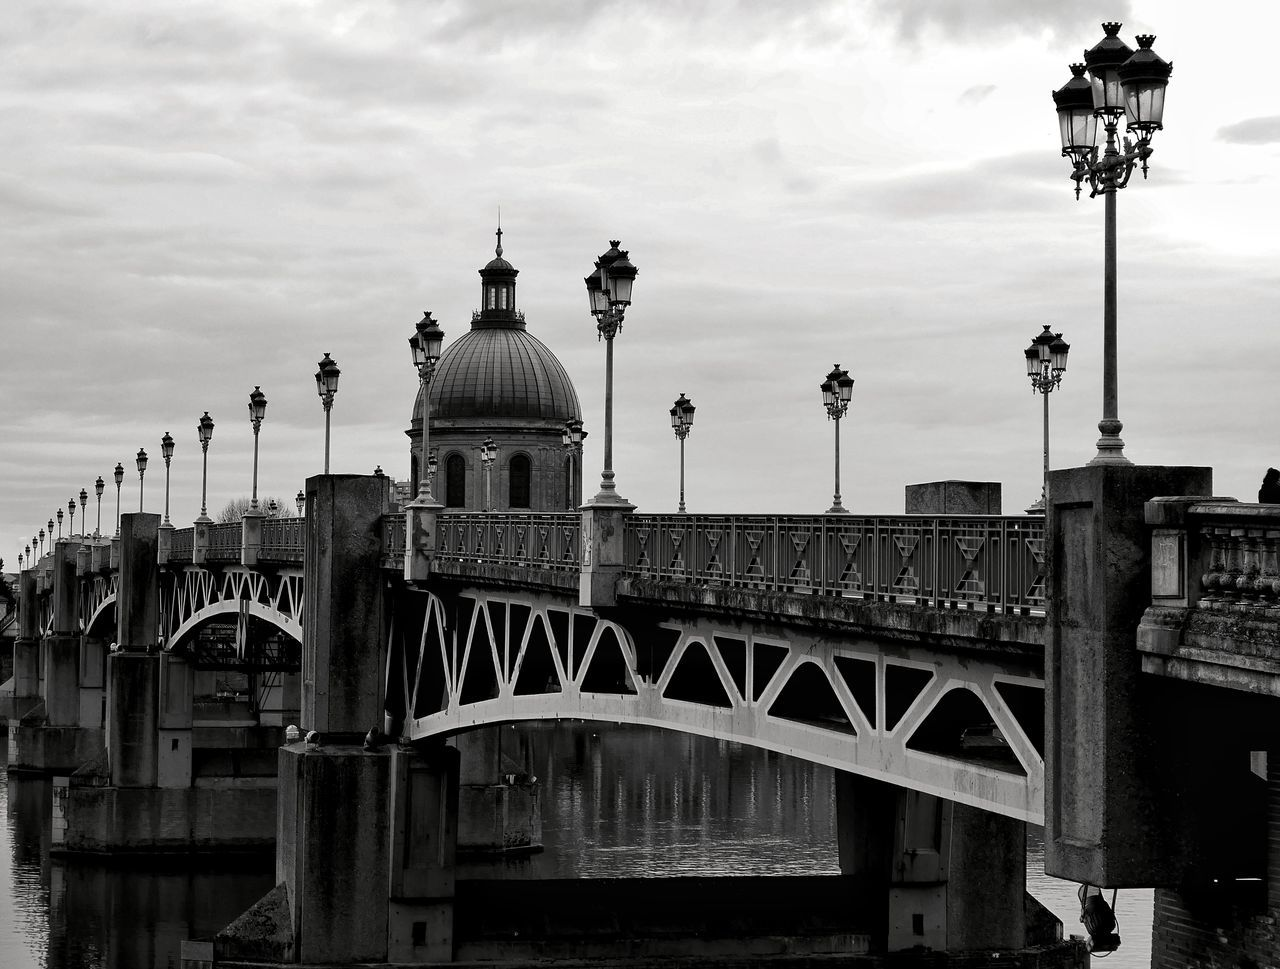 Pont Saint Pierre Toulouse Architecture City Travel Destinations Cityscape City Break Sky Cloud - Sky Bridge - Man Made Structure Water TOULOUSE TOWN No People Street Photography Streetphotography Blackandwhite Bnw Bnw_collection Bw Bw_collection Black And White Black & White Blackandwhite Photography Tourism Architectural Feature Architecture_collection